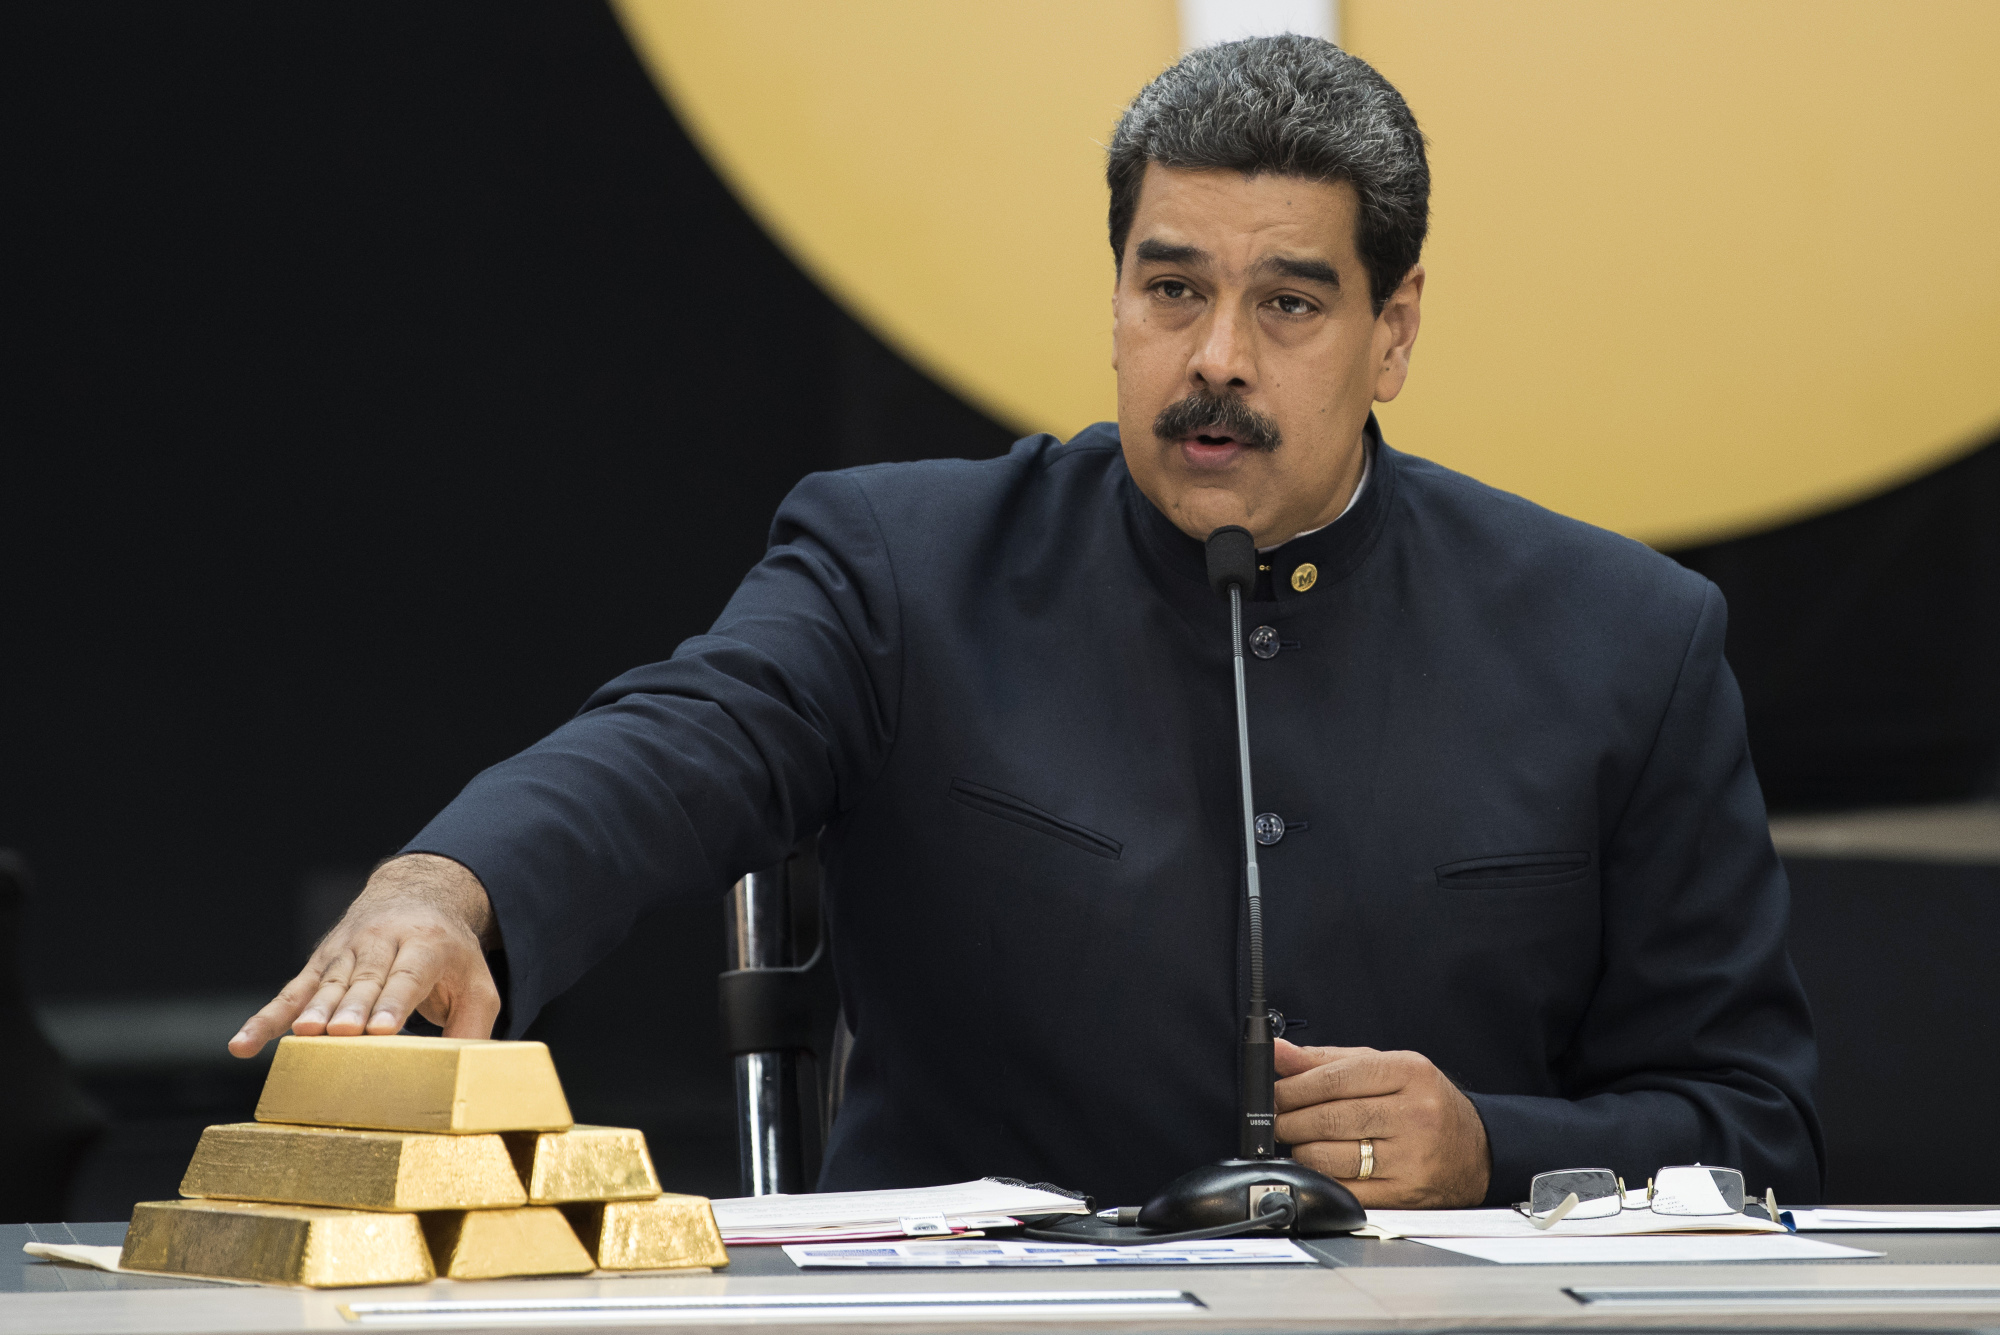 bloomberg.com - Patricia Laya - Citigroup Settles Venezuela Gold Swap Transaction